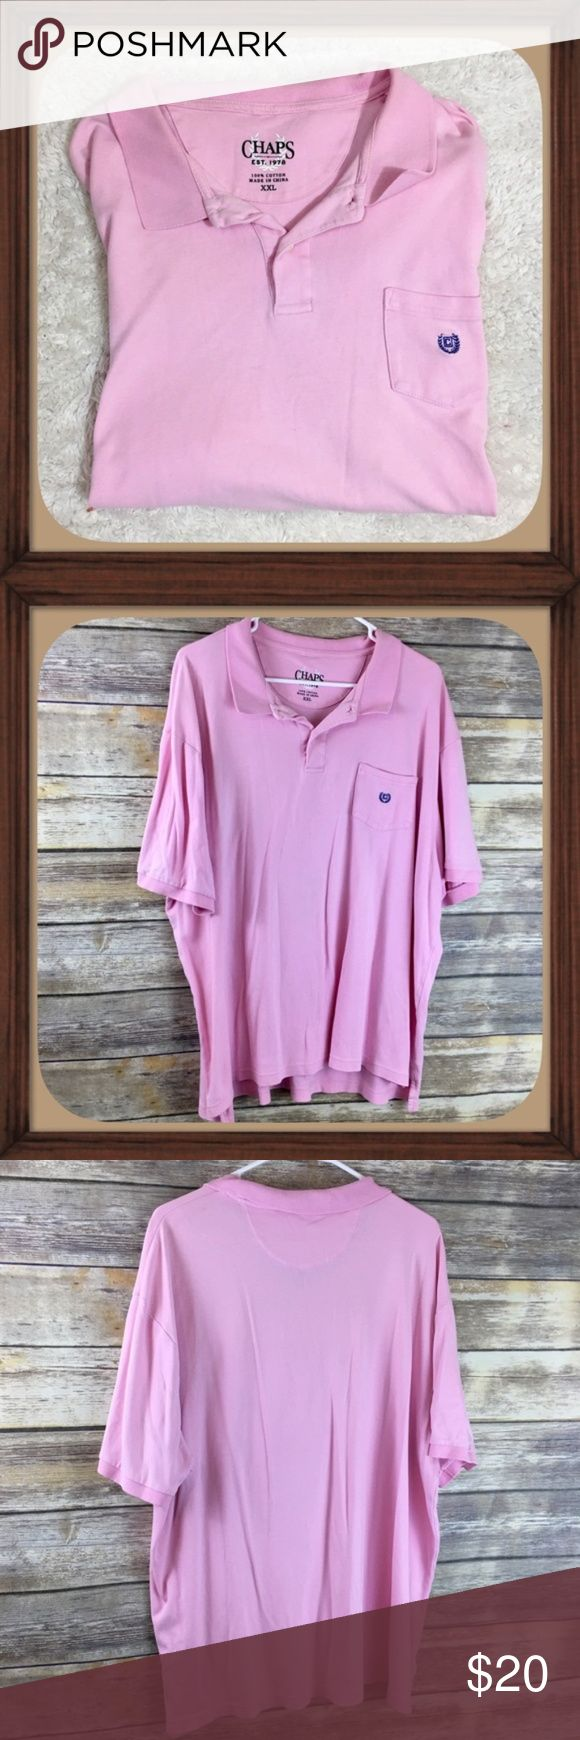 Chaps Men's Light Pink Soft Cotton Polo Shirt XXL Chaps Men's light pink polo. Size XXL. In good used condition. 27 inches long. 26 inches arm pit to arm pit without stretching material.   Be sure to read measurements.   All Offers Are Considered Don't Be Shy!   No Trades   15% OFF Bundles   Color may vary slightly due to lighting Chaps Shirts Polos